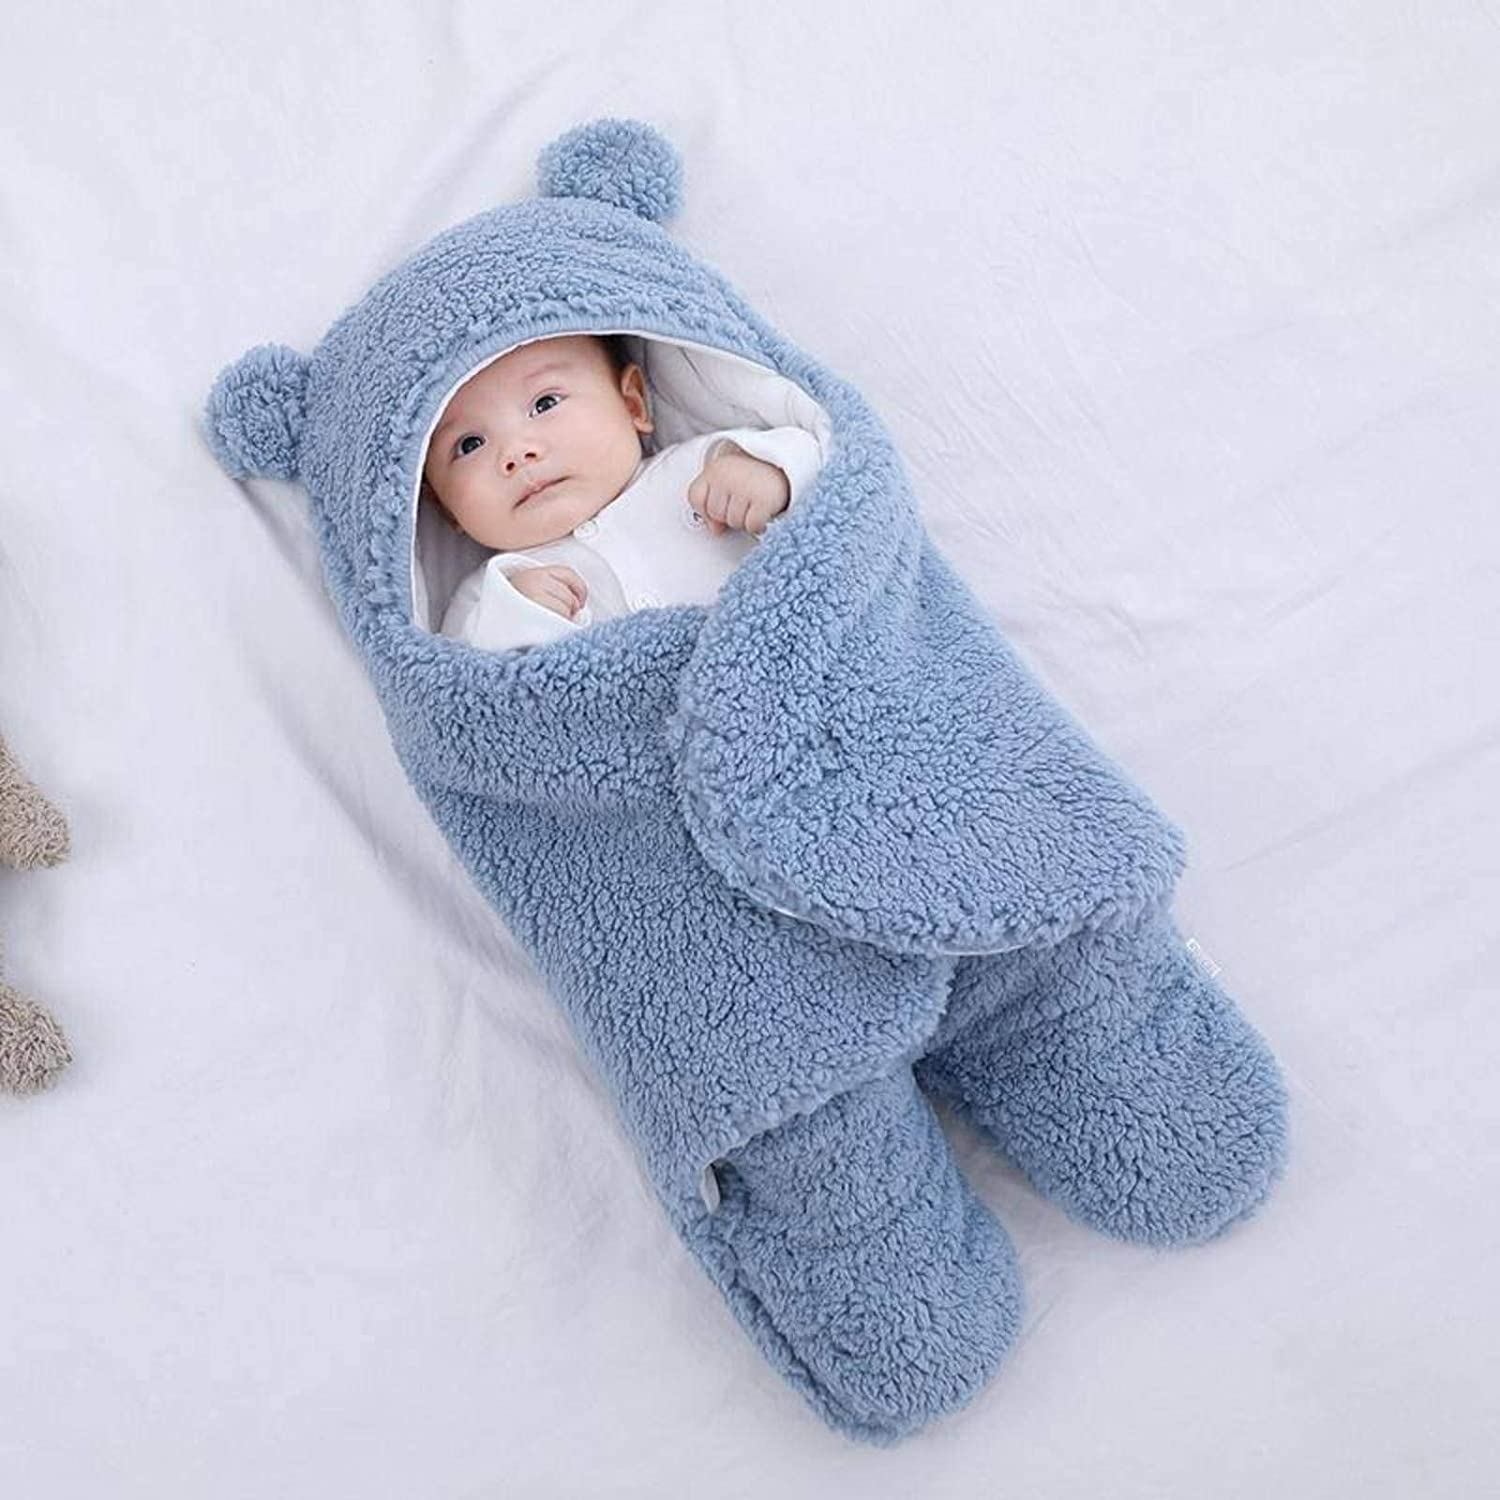 N\C Newborn Challenge the lowest price Beauty products Blanket Baby Sleeping Bag and Pola Soft Fluffy Super